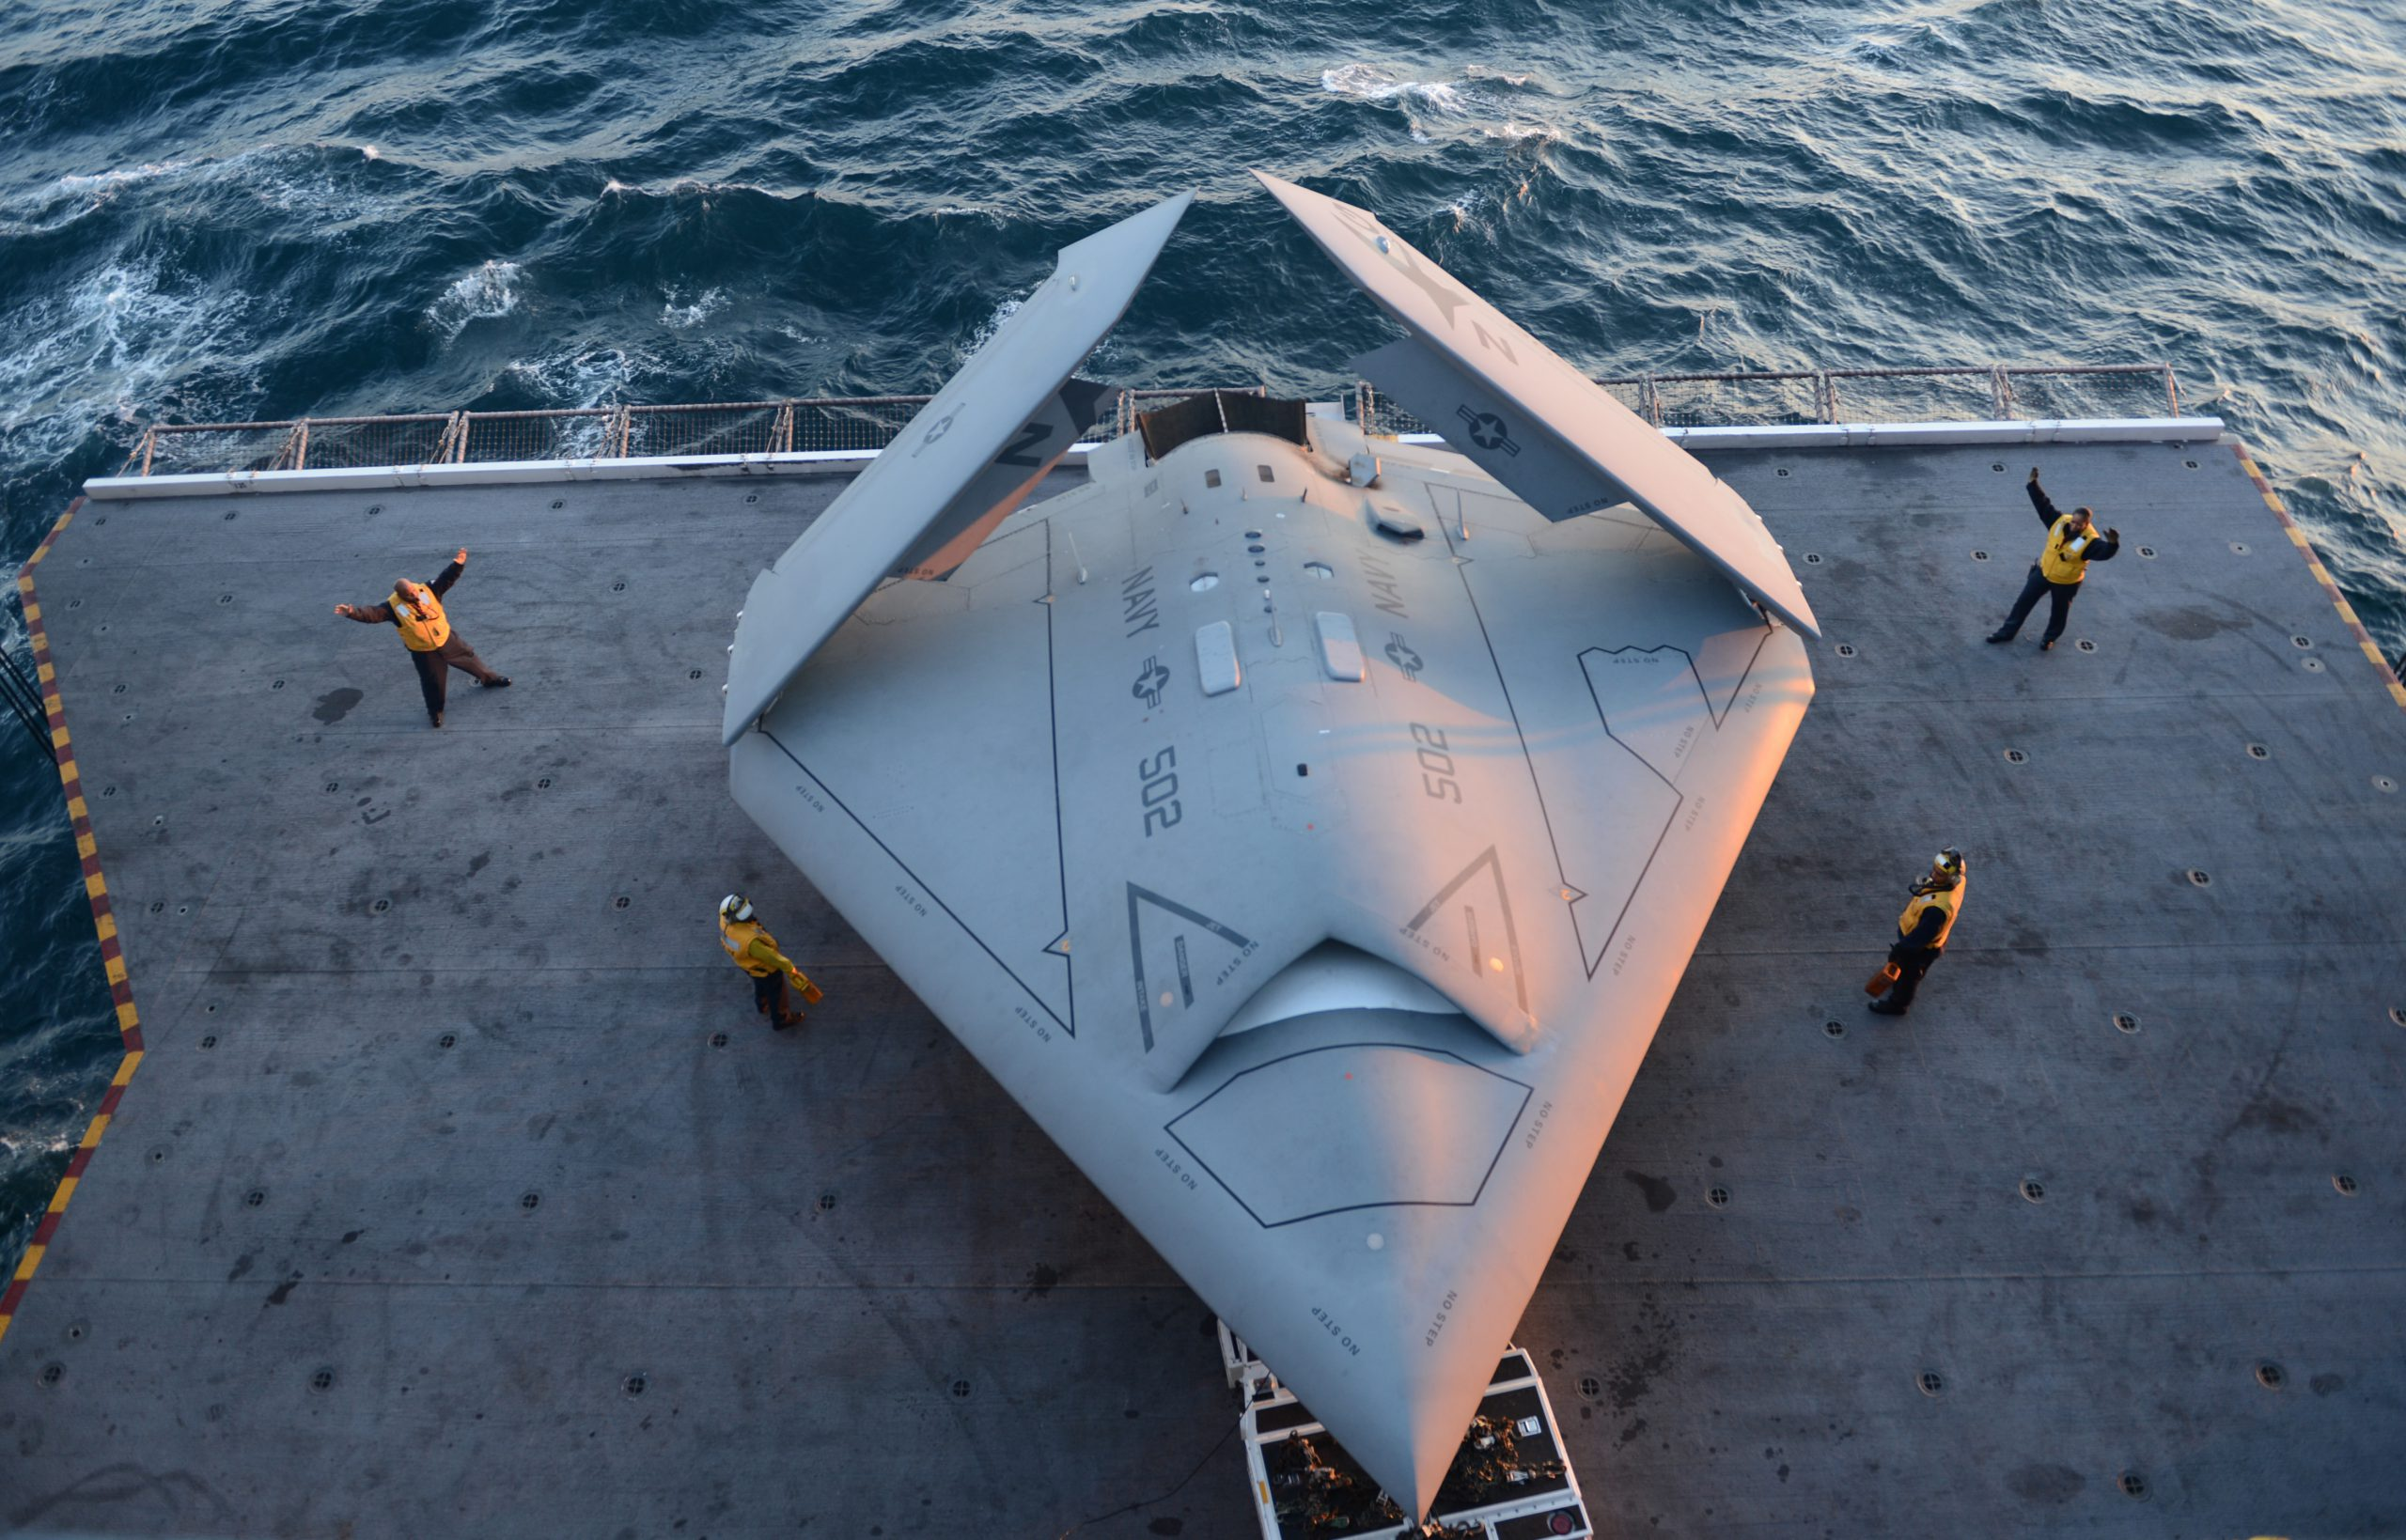 https://upload.wikimedia.org/wikipedia/commons/c/cd/U.S._Sailors_move_a_U.S._Navy_X-47B_Unmanned_Combat_Air_System_demonstrator_aircraft_onto_an_aircraft_elevator_aboard_the_aircraft_carrier_USS_George_H.W._Bush_%28CVN_77%29_May_14%2C_2013%2C_in_the_Atlantic_Ocean_130514-N-FU443-025.jpg